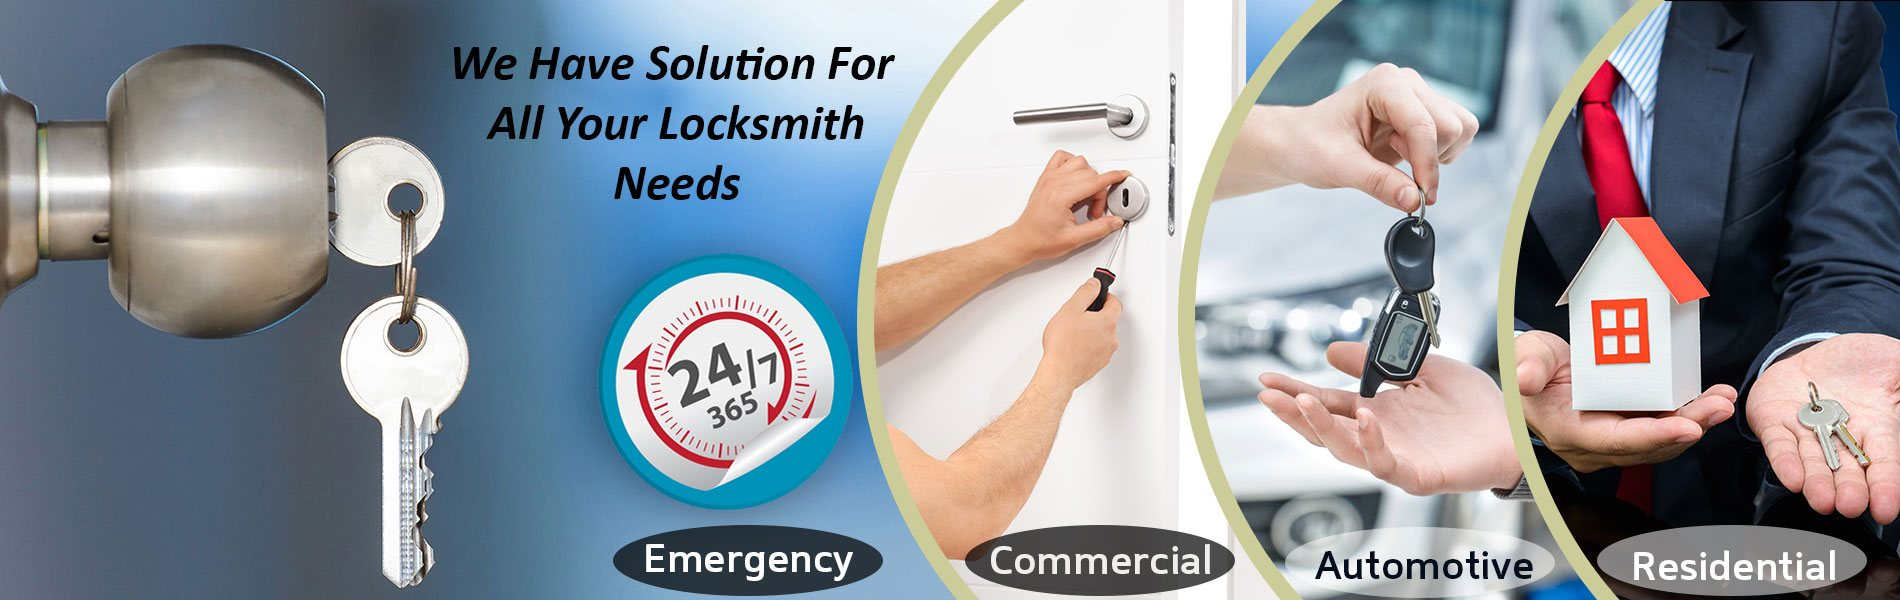 Neighborhood Locksmith Store Colorado Springs, CO 719-992-3197